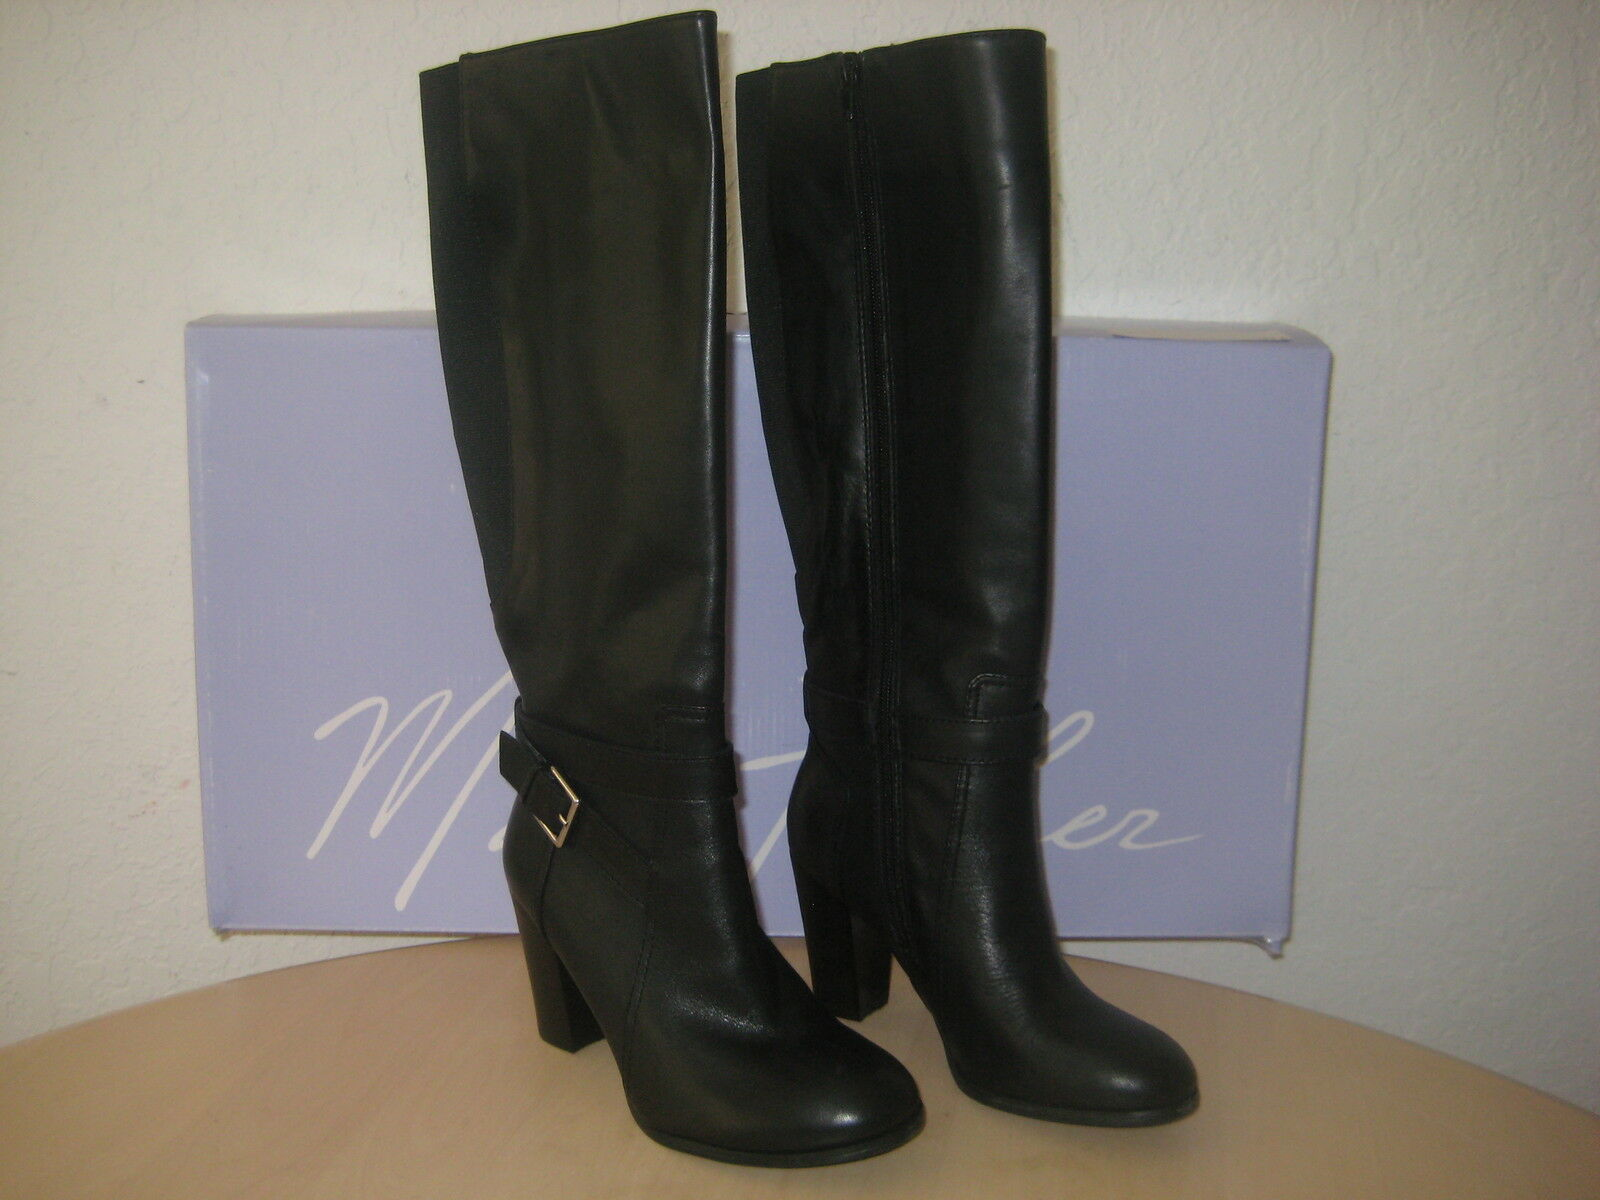 Marc Fisher shoes Size 5.5 M Womens New Kessler Black Leather Knee High Boots